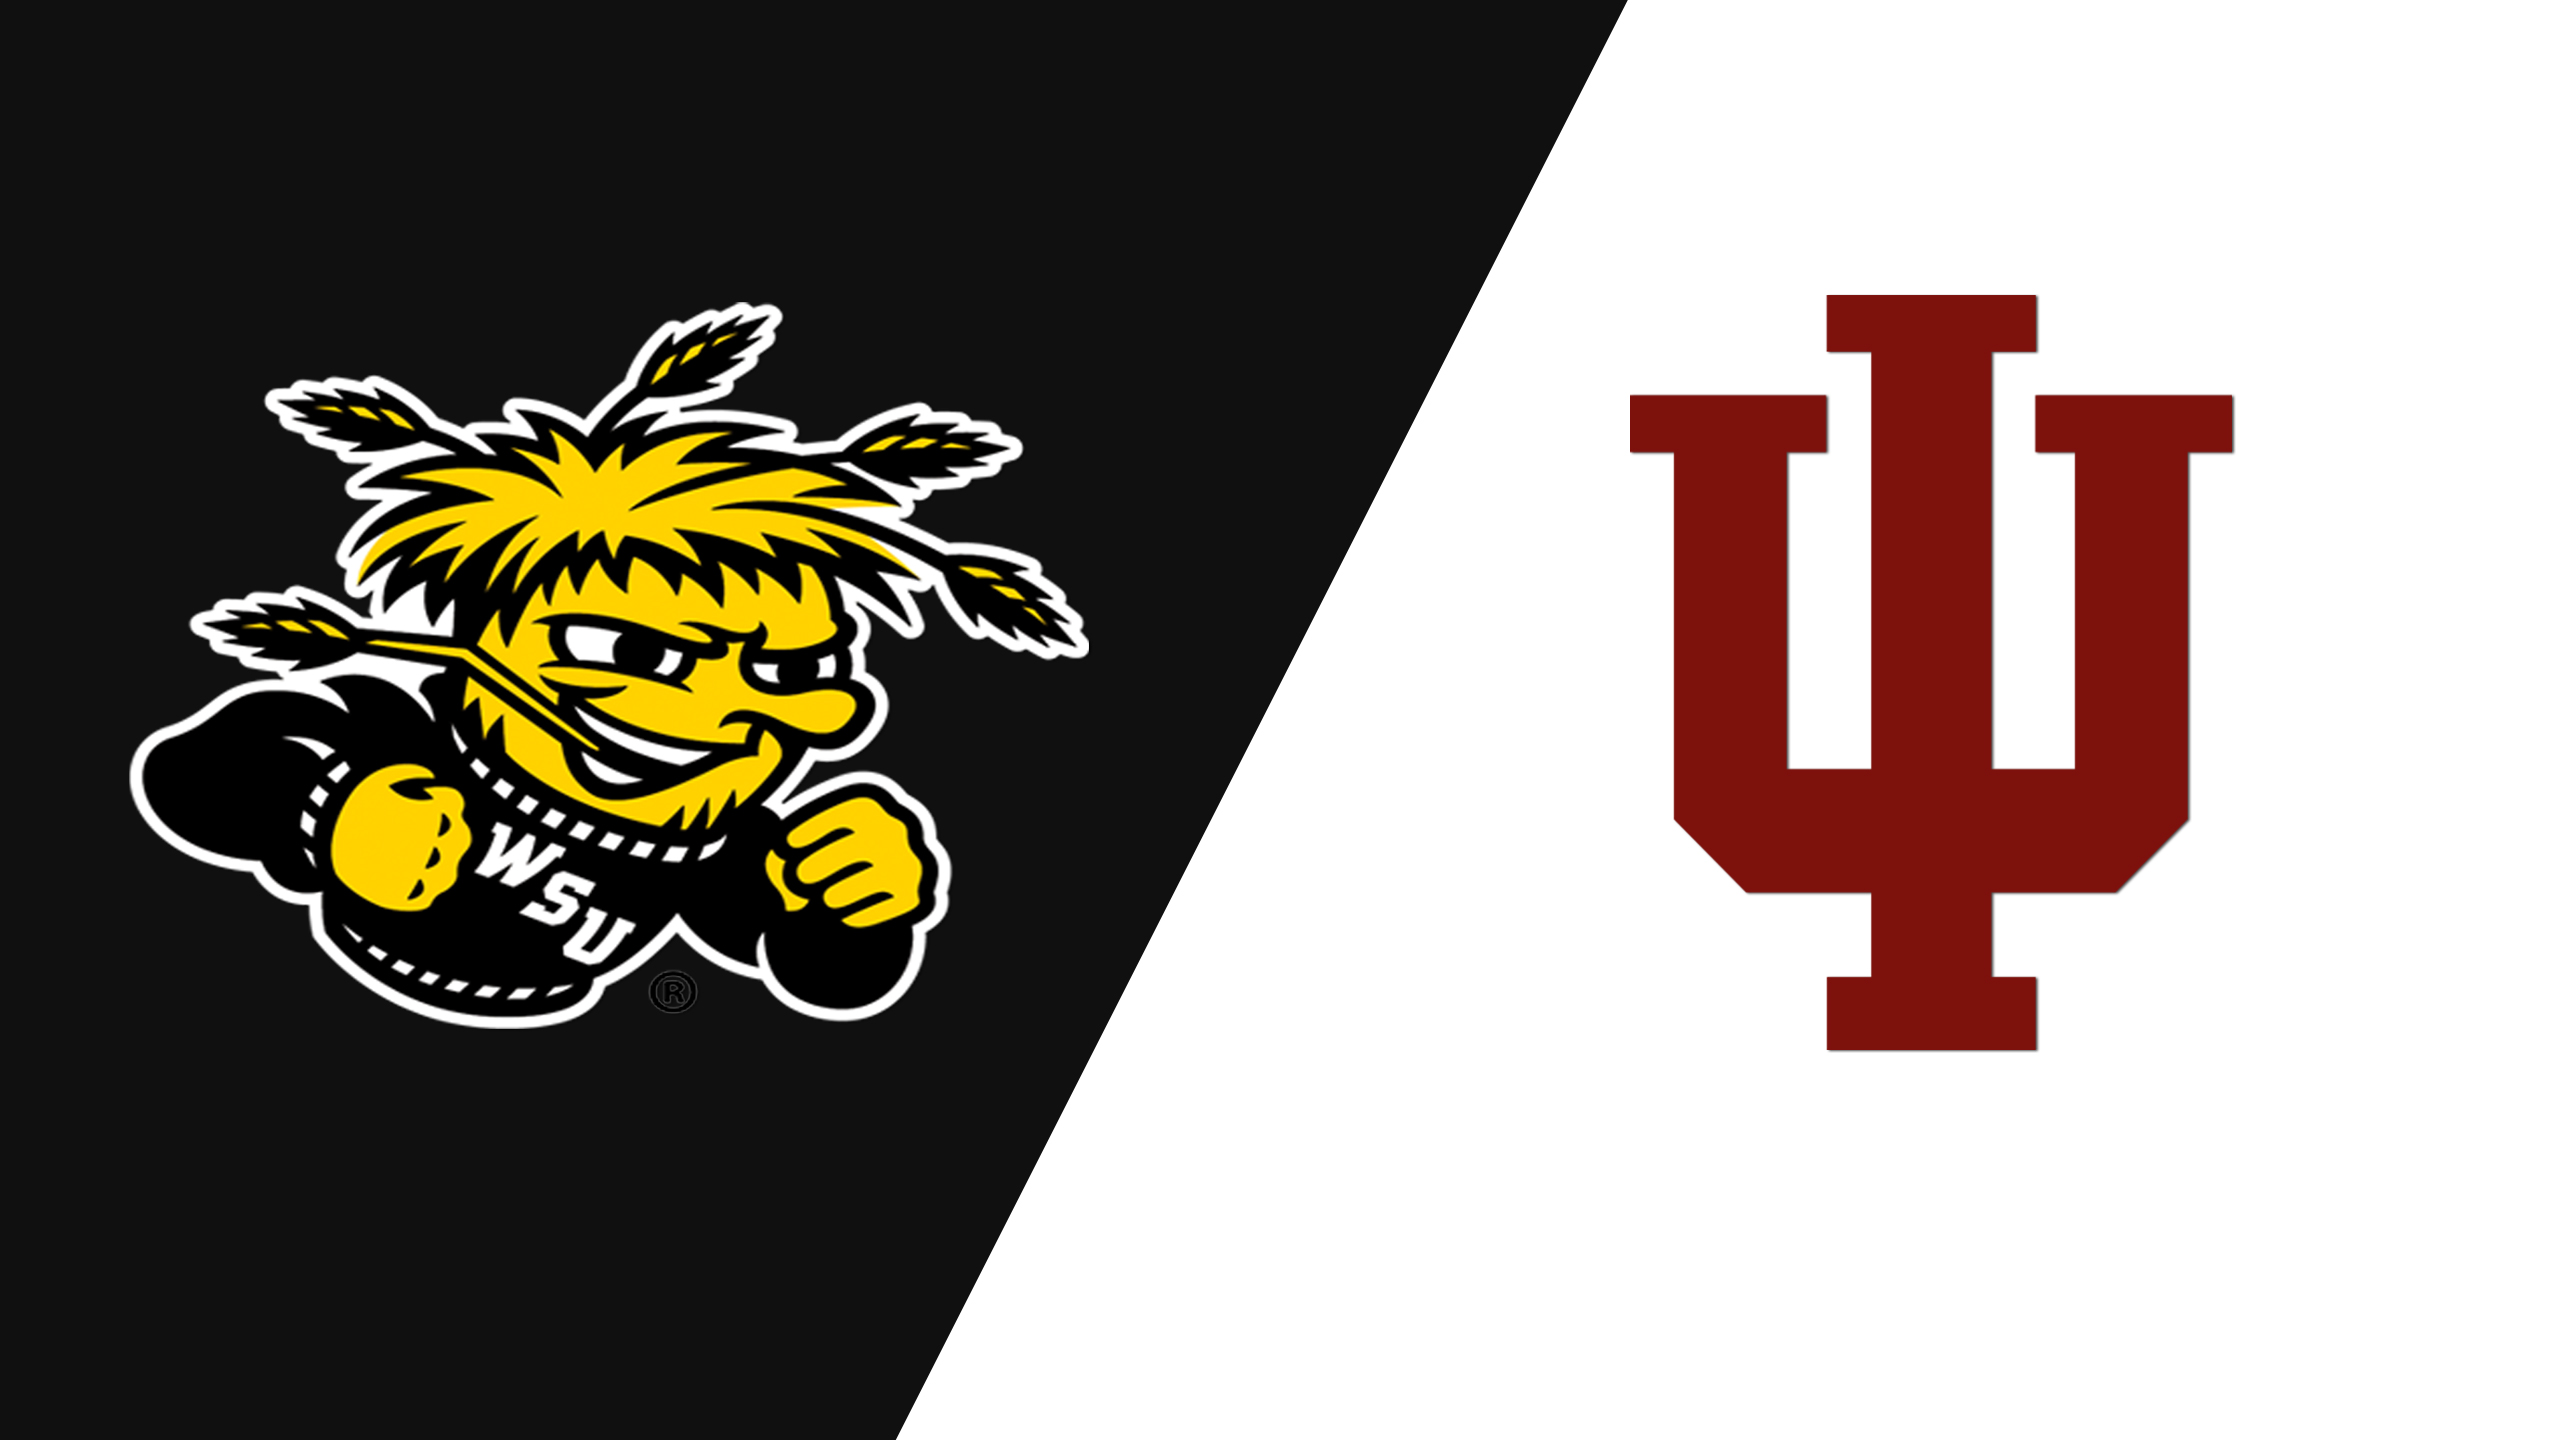 #6 Wichita State vs. #1 Indiana (Quarterfinal #1) (NIT)